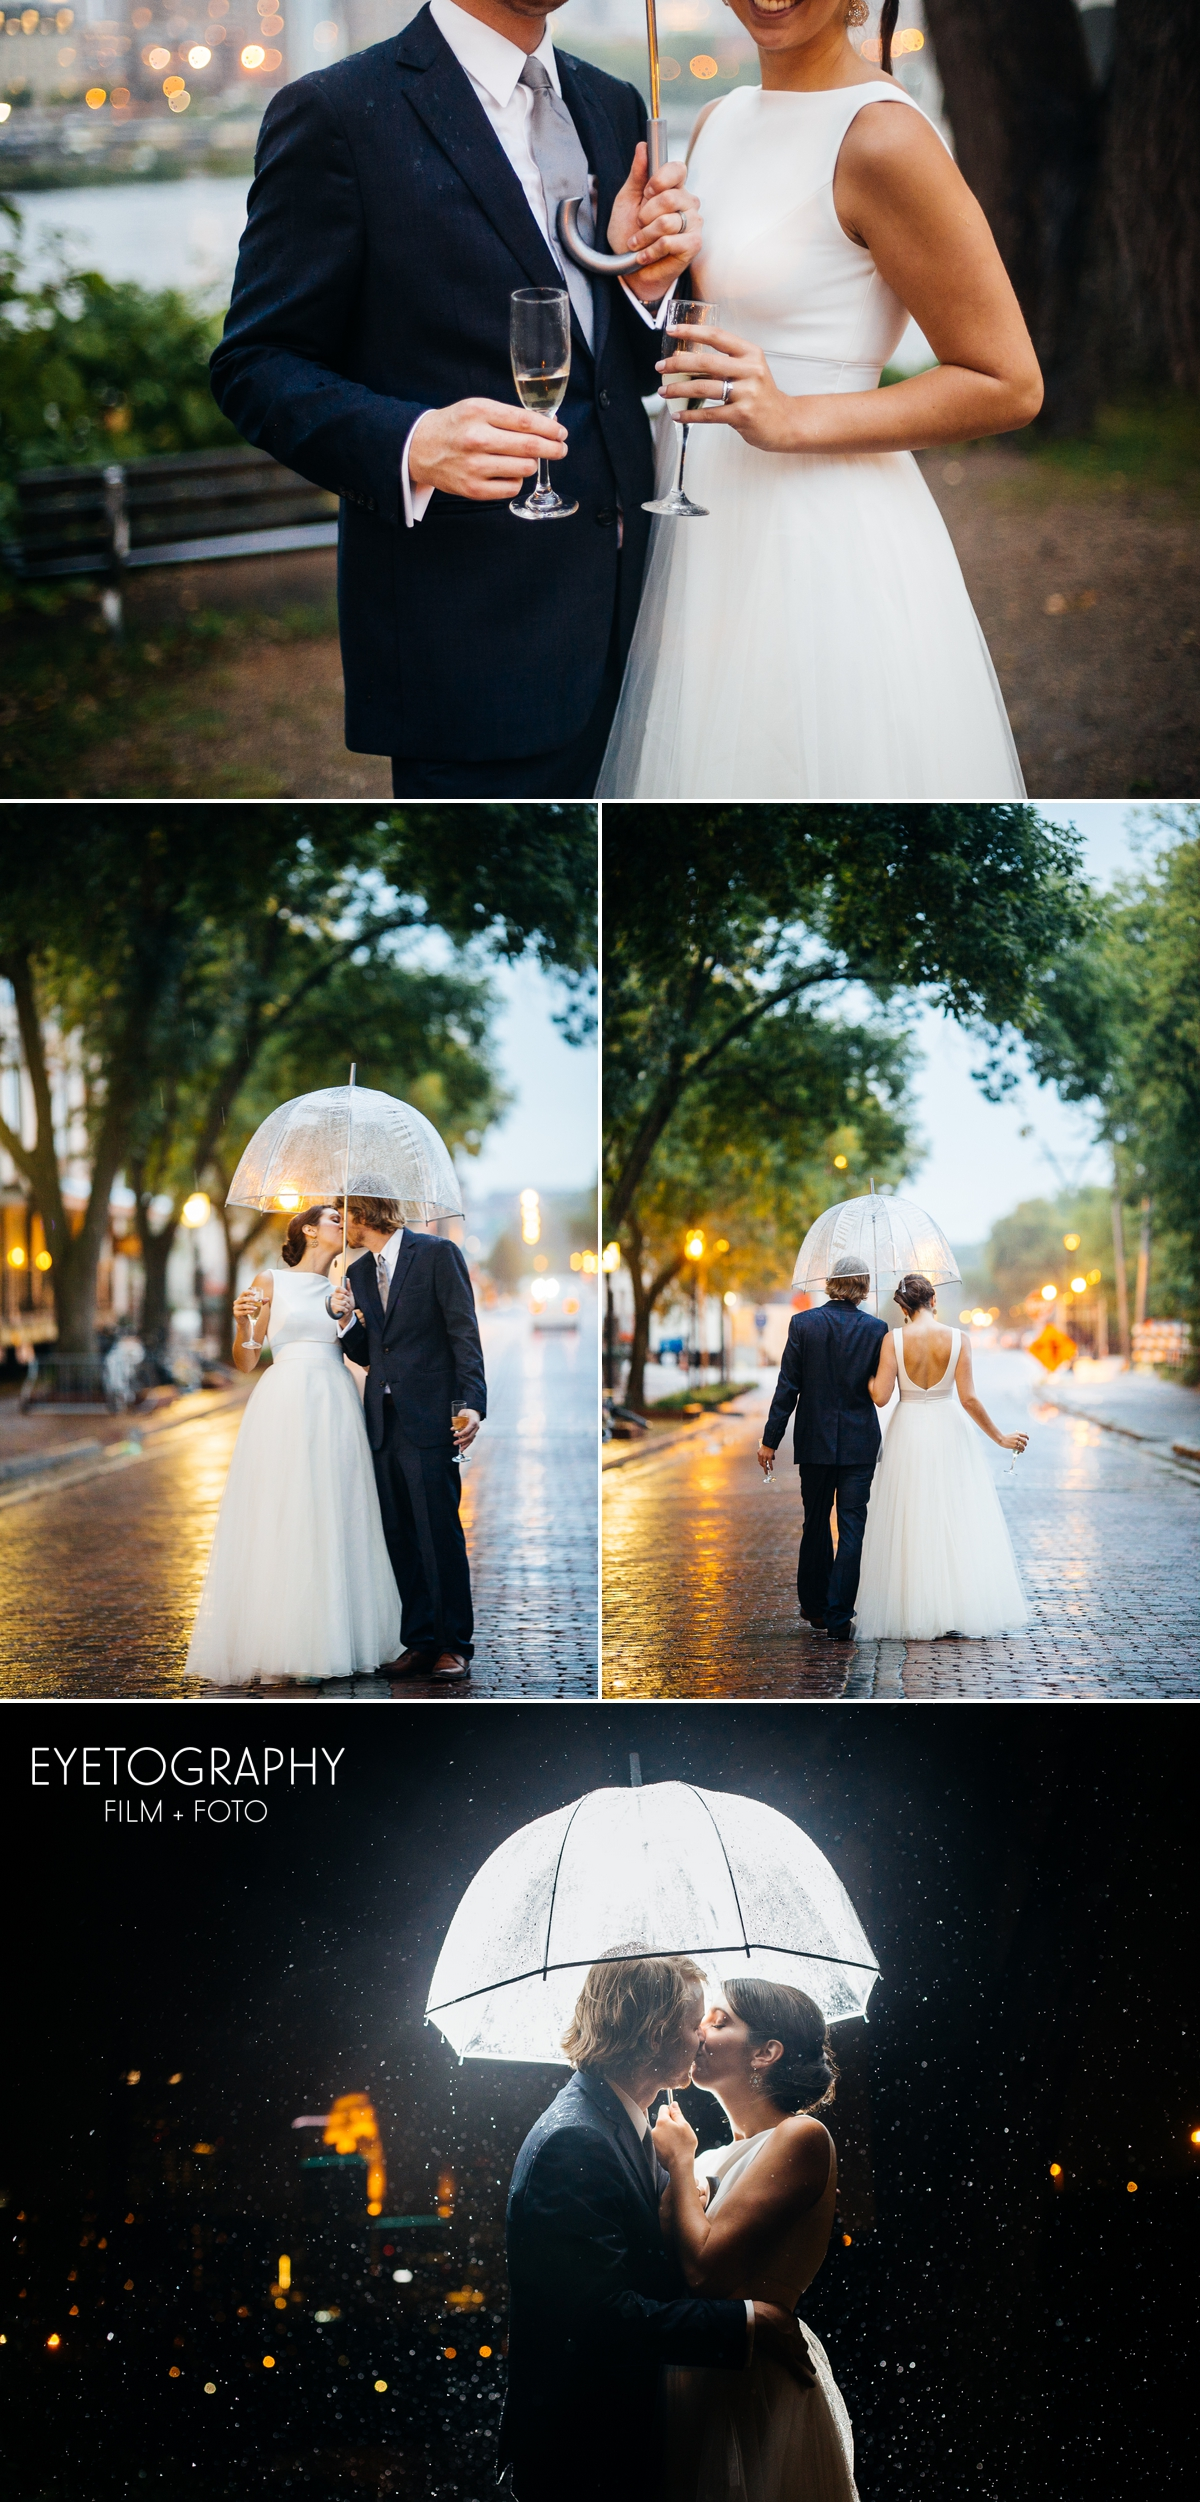 Aster Cafe Wedding - Eyetography Film + Foto | Katharine + Blake 12